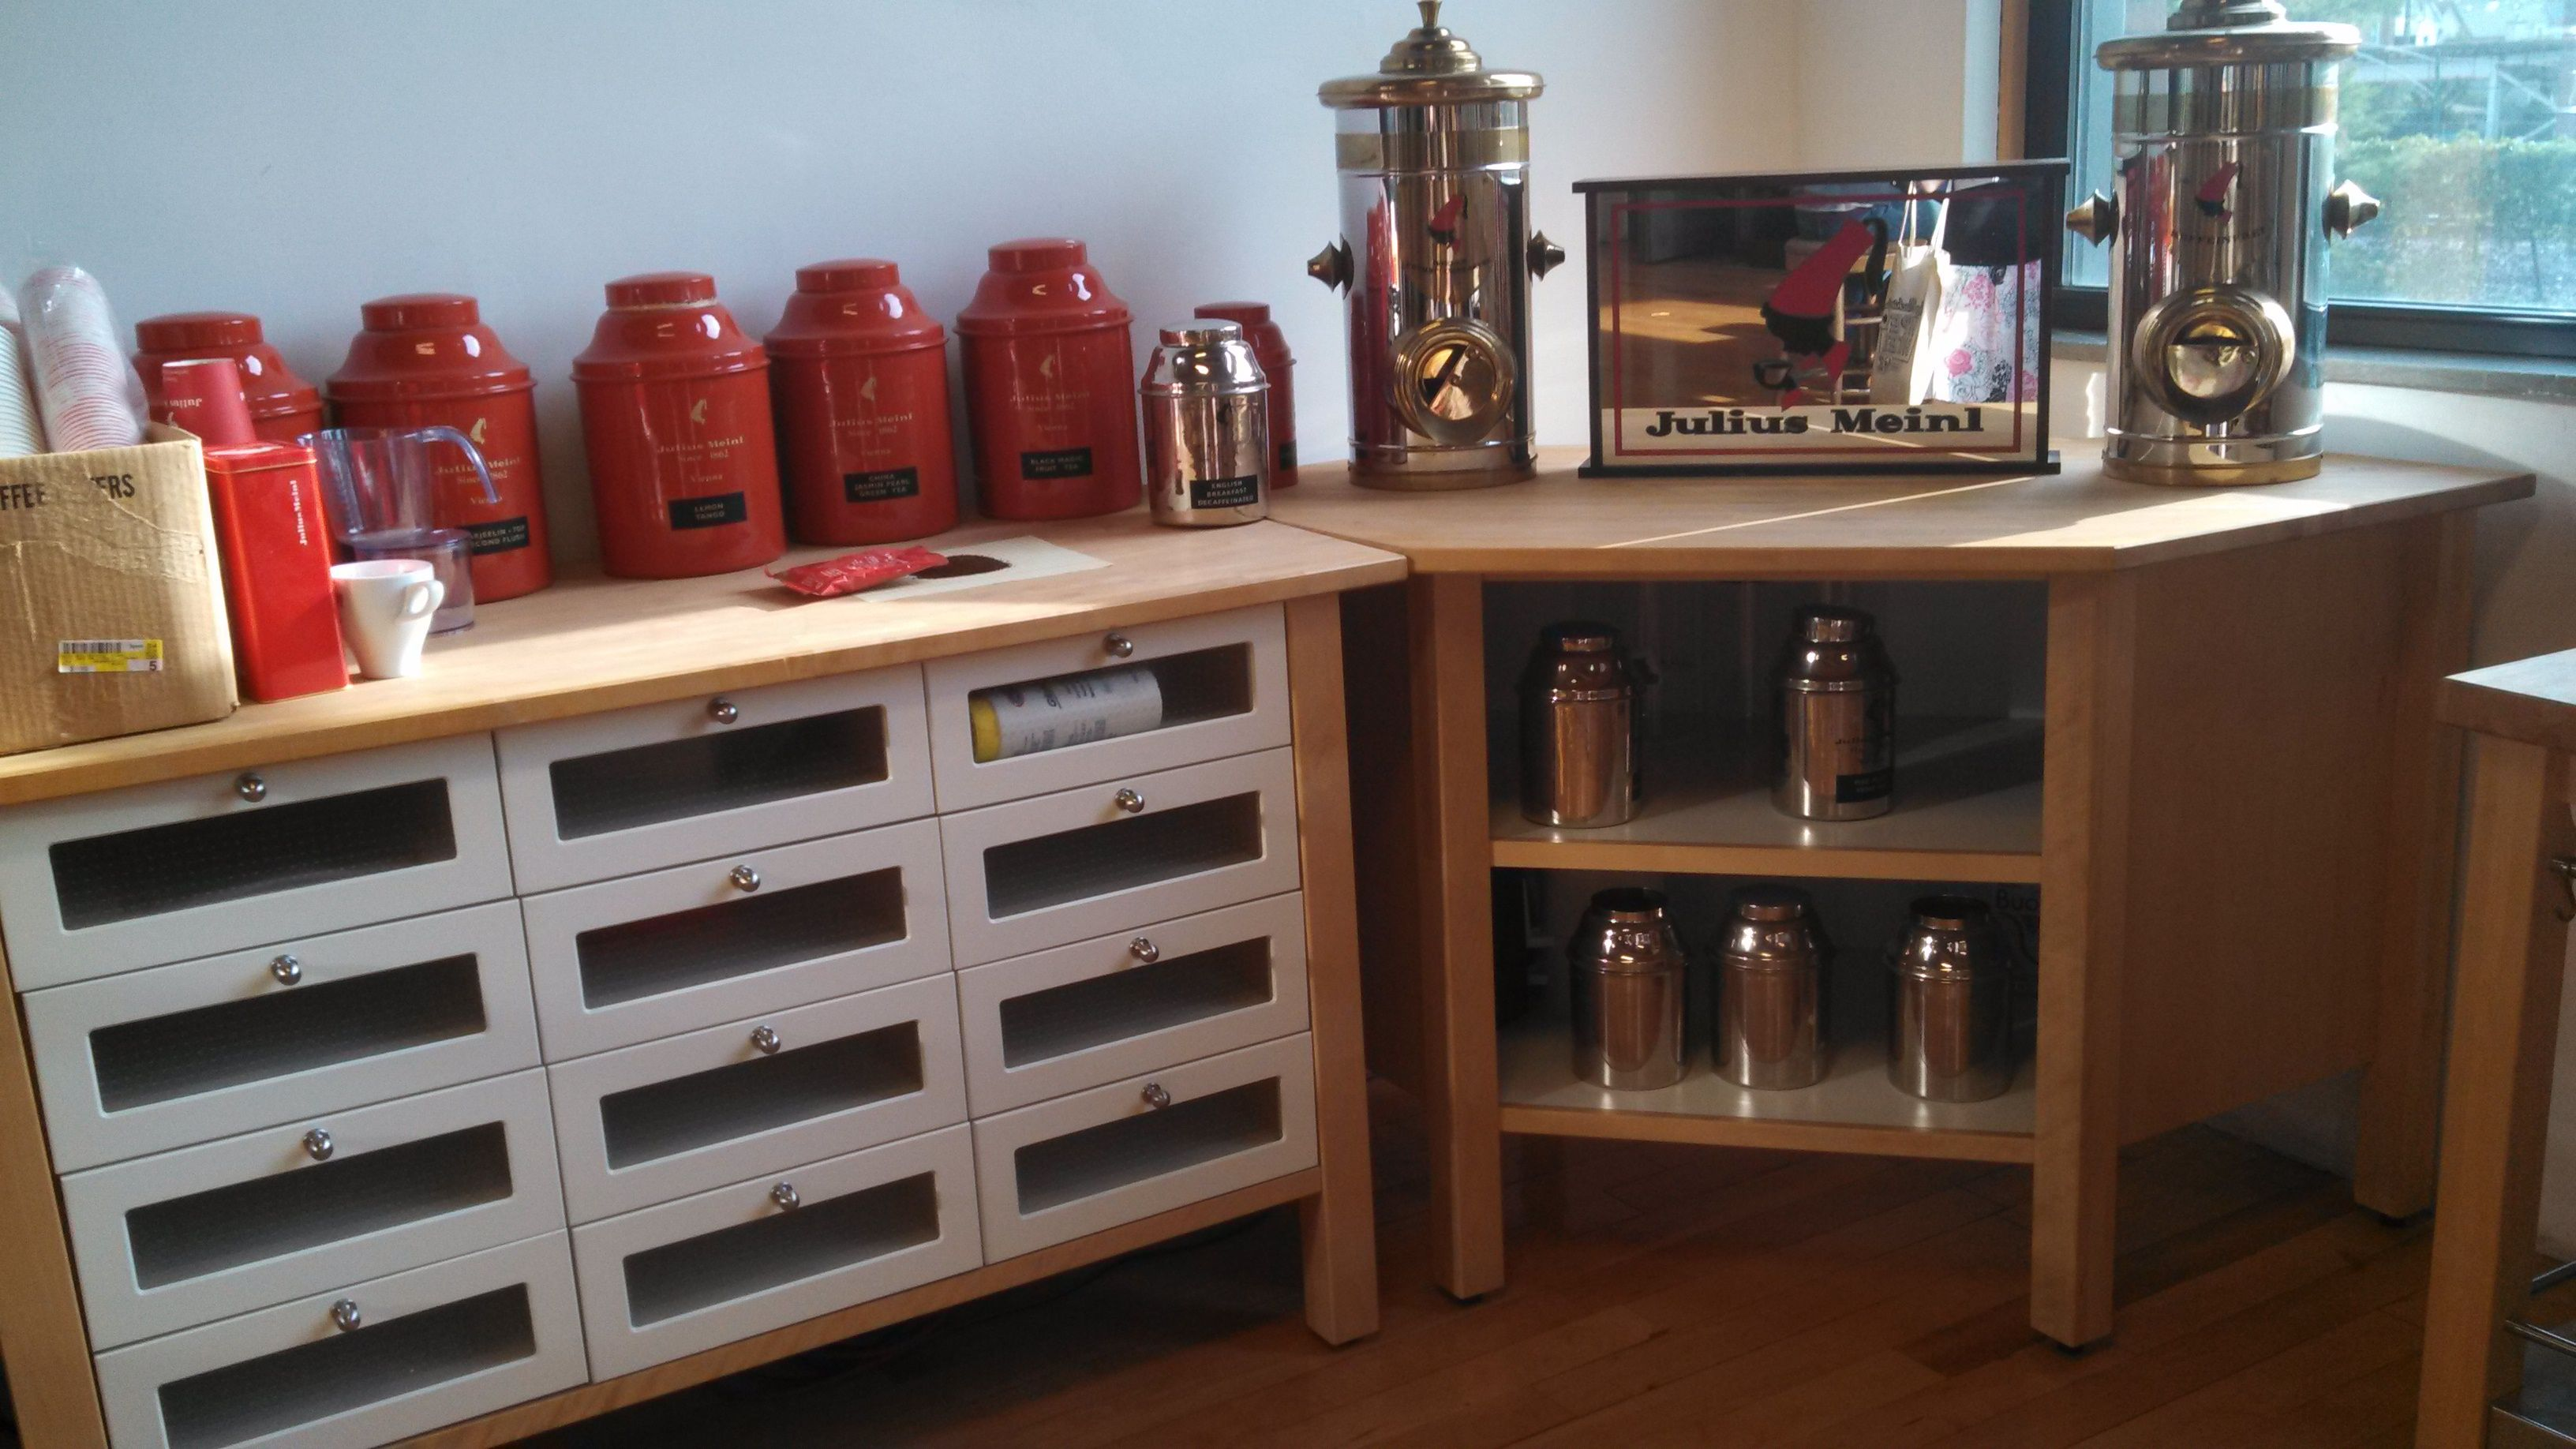 Shelves/coffee stuff. Would be a great place for the Sangria bar if we can clear the tops.